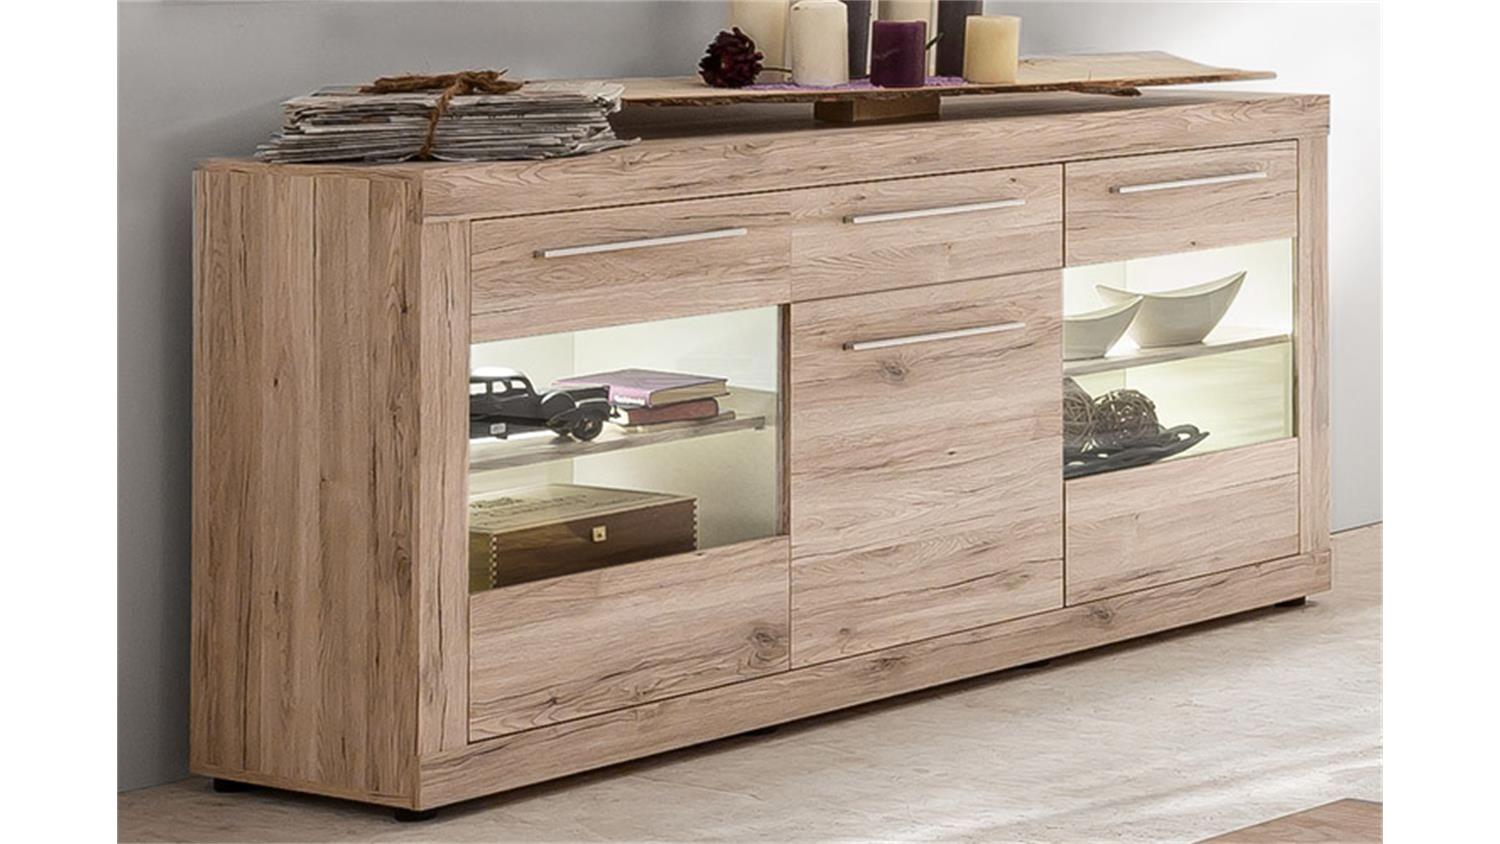 sideboard passat schrank vitrine eiche sand mit glast ren. Black Bedroom Furniture Sets. Home Design Ideas